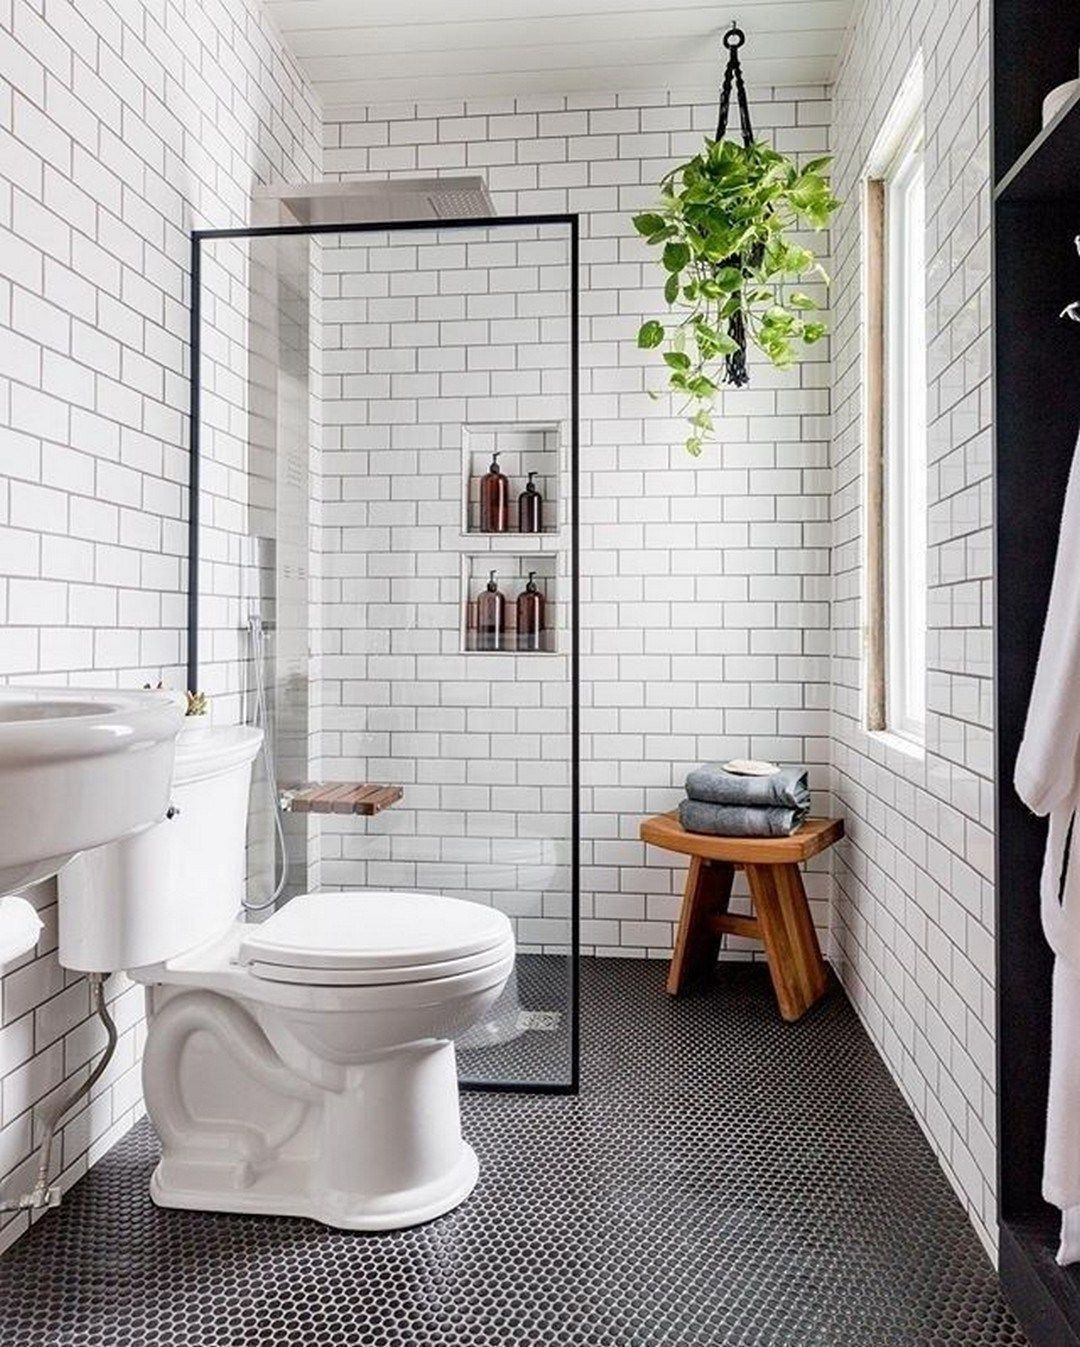 49 Most Popular Basement Bathroom Remodel Ideas On A Budget Low Ceiling And For Small Space In 2020 Small Bathroom Bathroom Transformation Small Bathroom Remodel